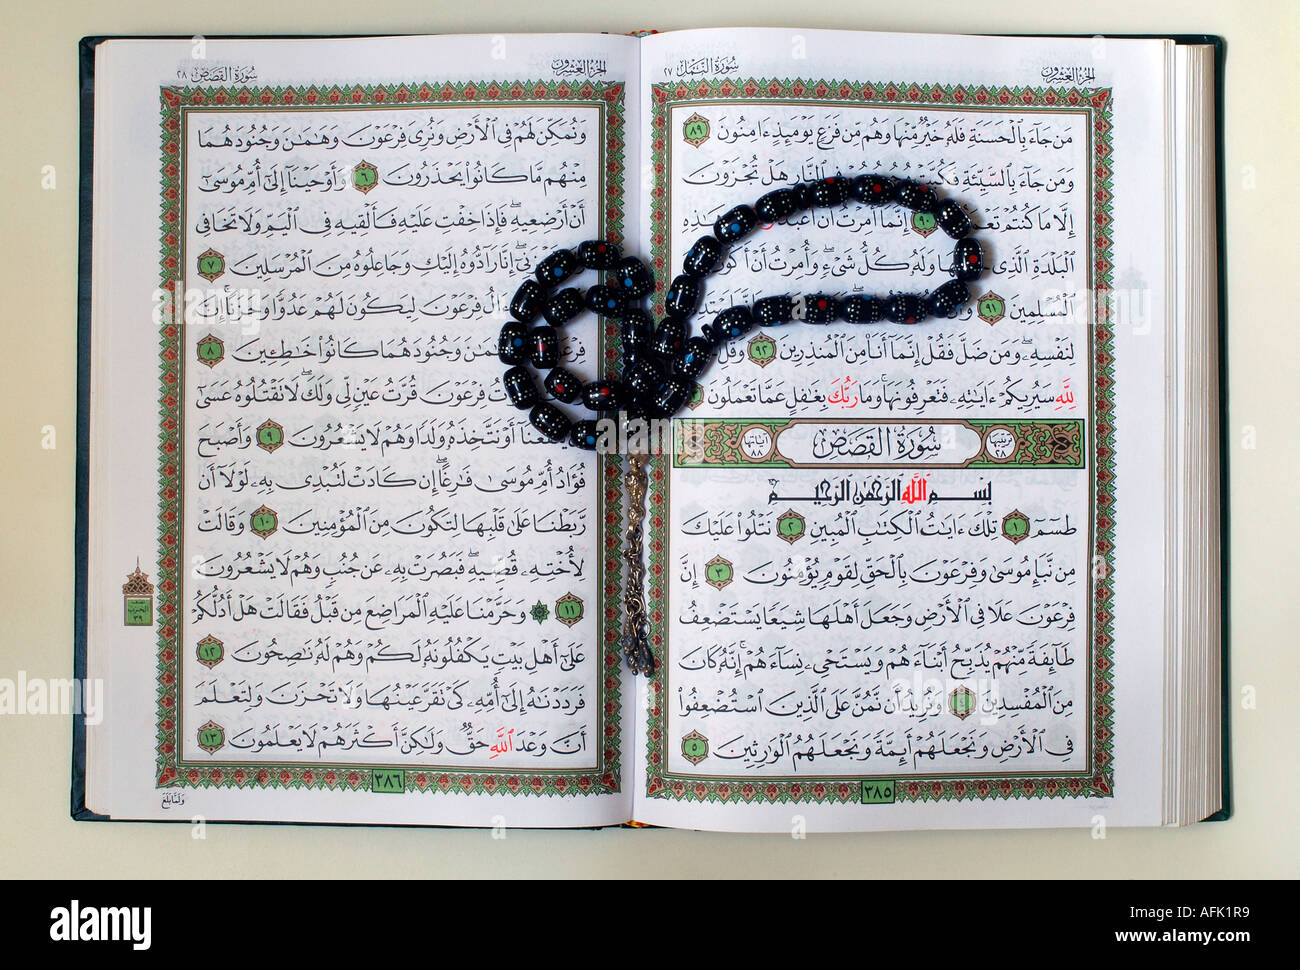 A copy of the sacred text of Islam Qur'an opened for reading with prayer beads called Tasbeeh - Stock Image